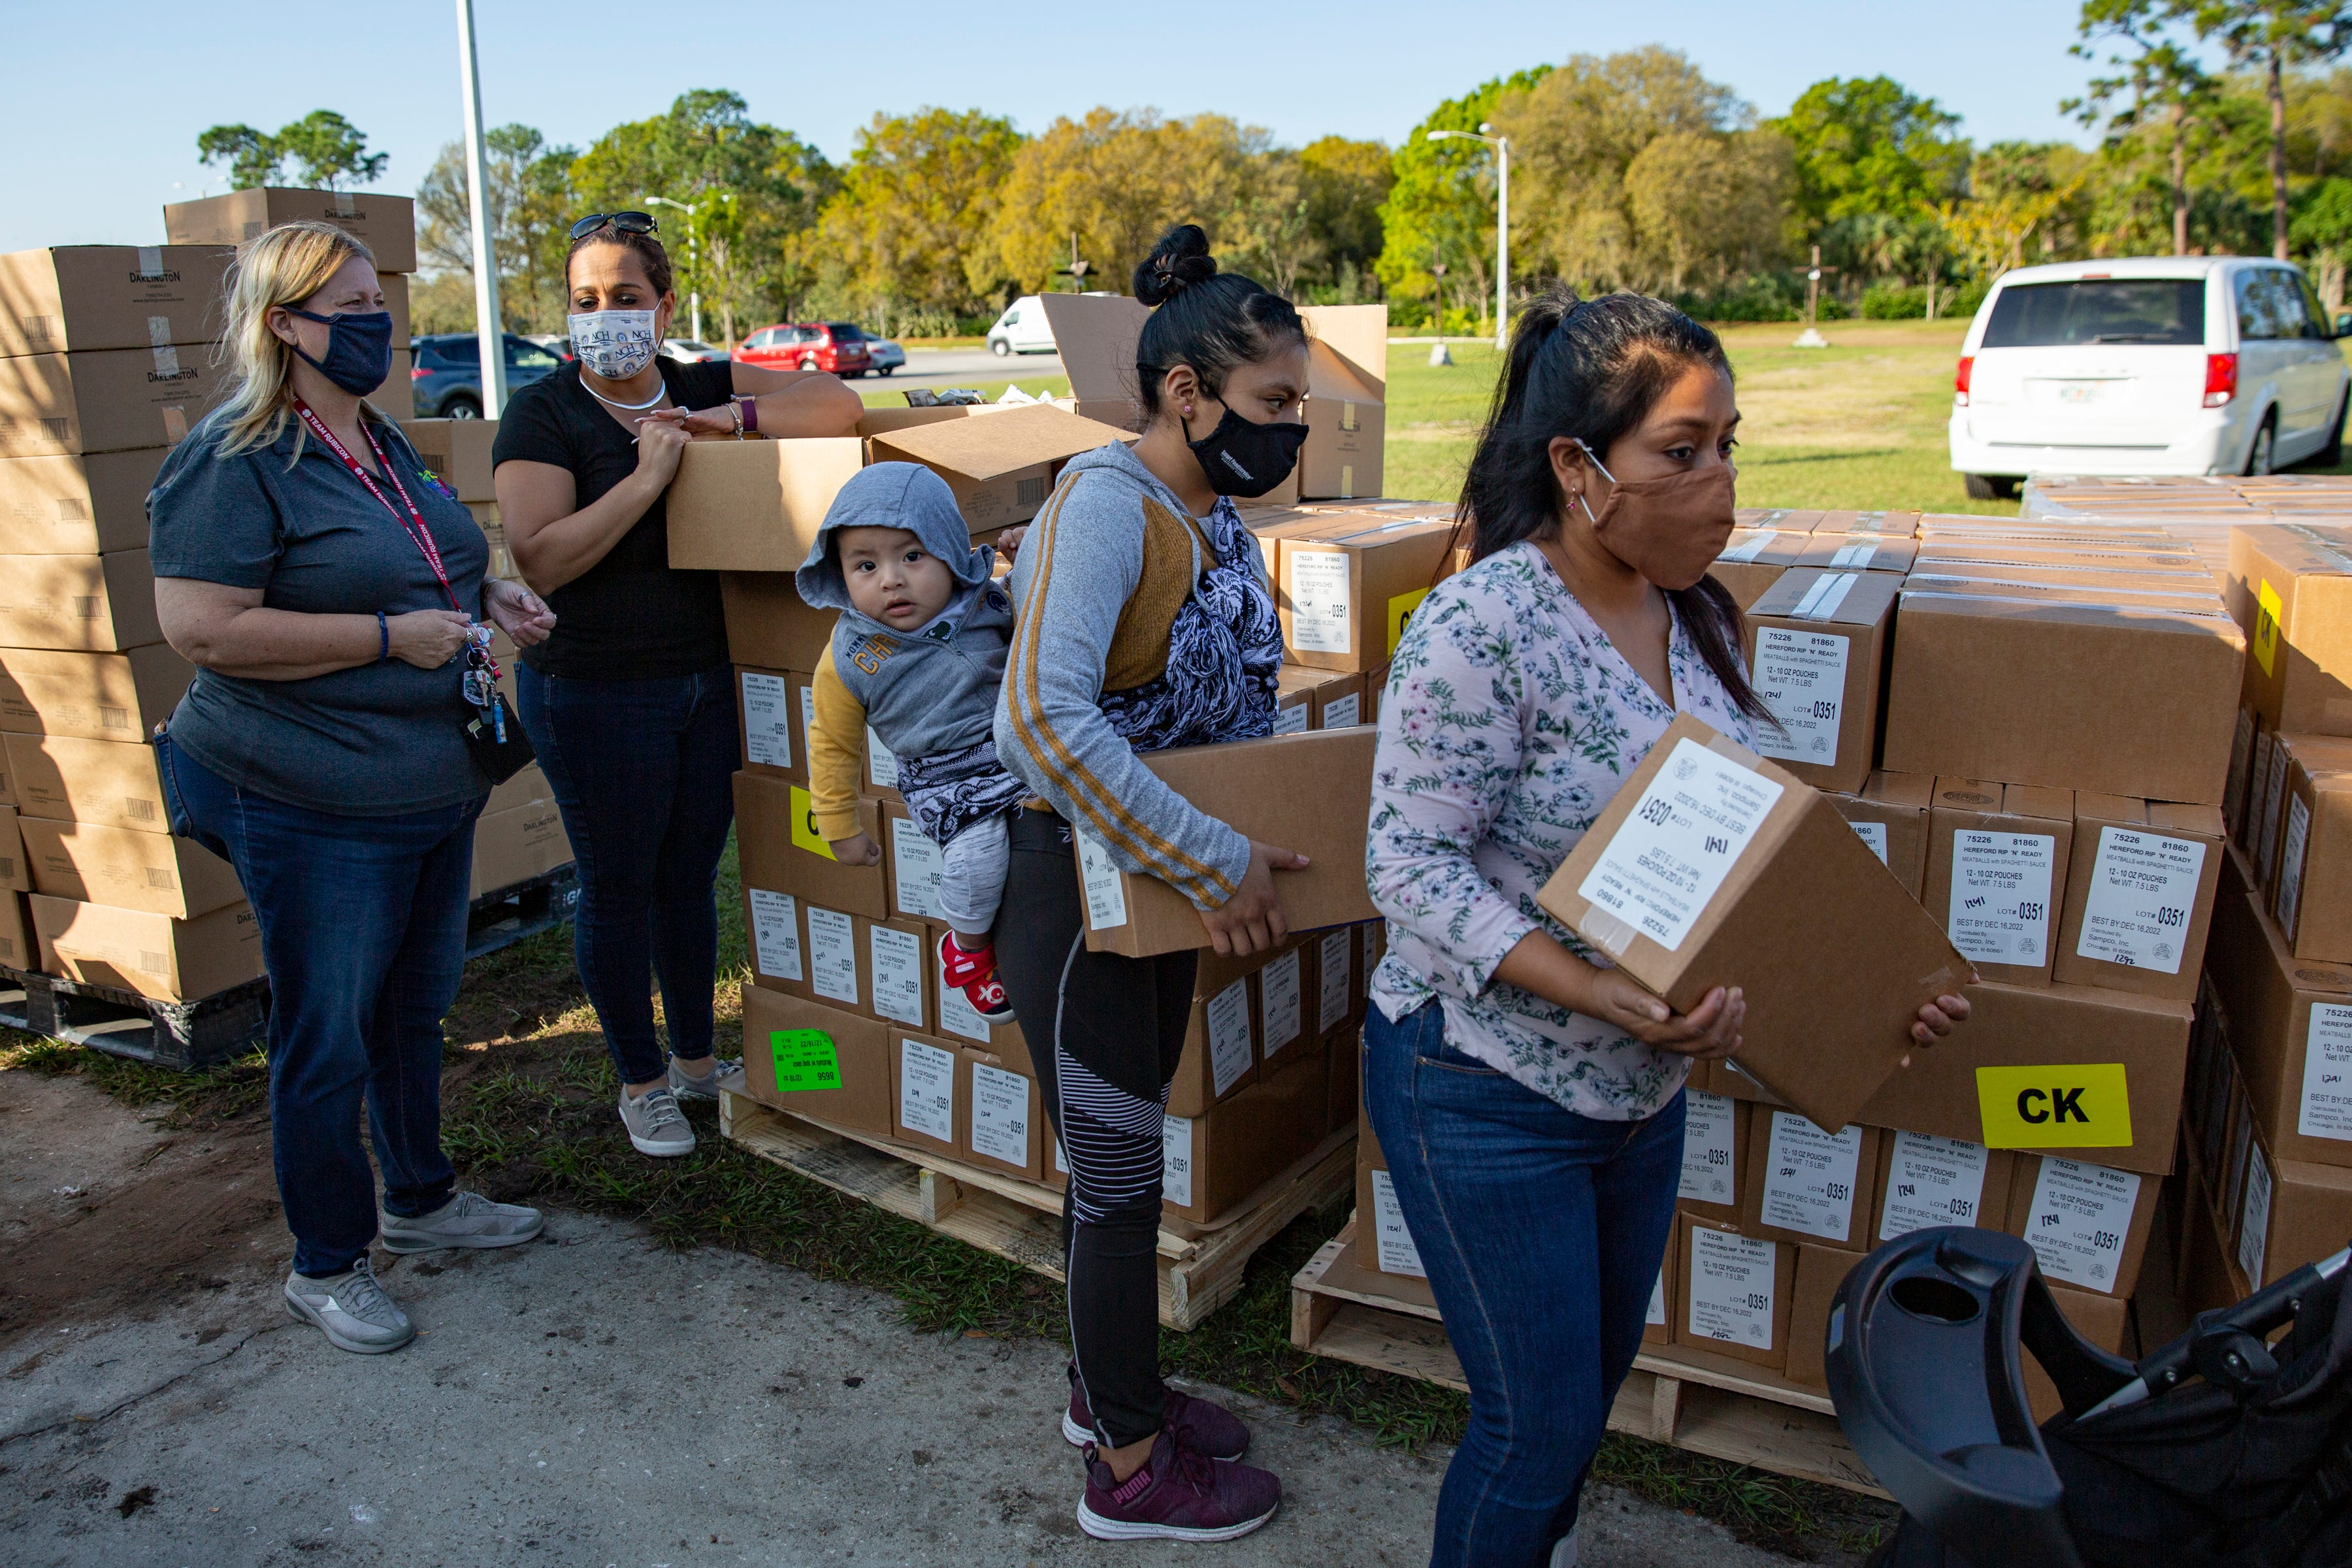 Community members collect boxes containing food during a homeless count in January hosted by the Collier County Hunger and Homeless Coalition at Guadalupe Social Services in Immokalee.